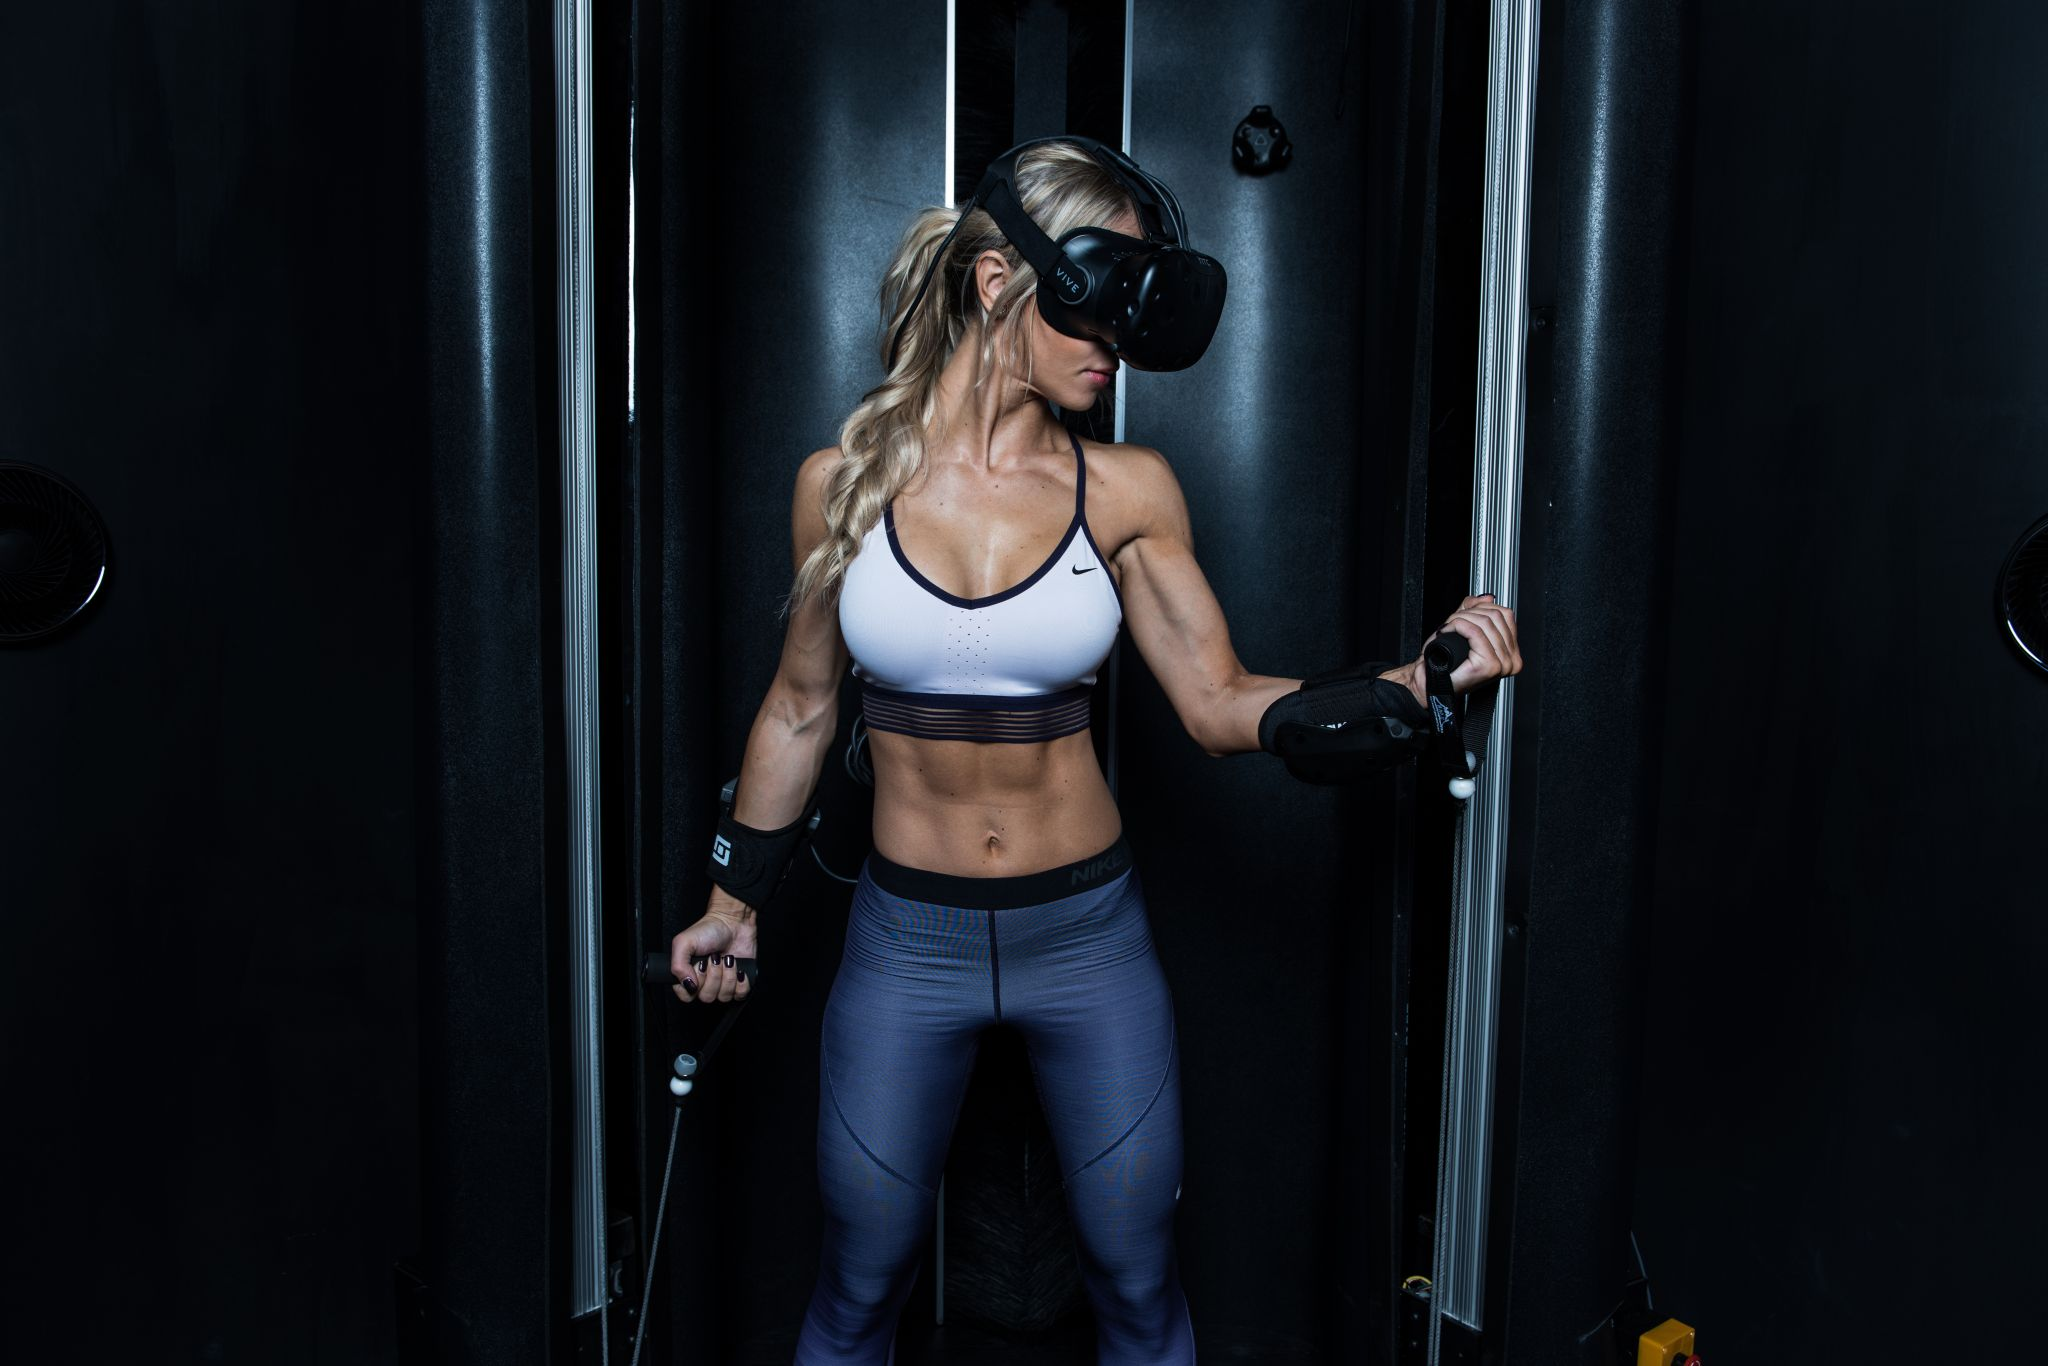 The world's first VR gym is opening in San Francisco. We tried it.